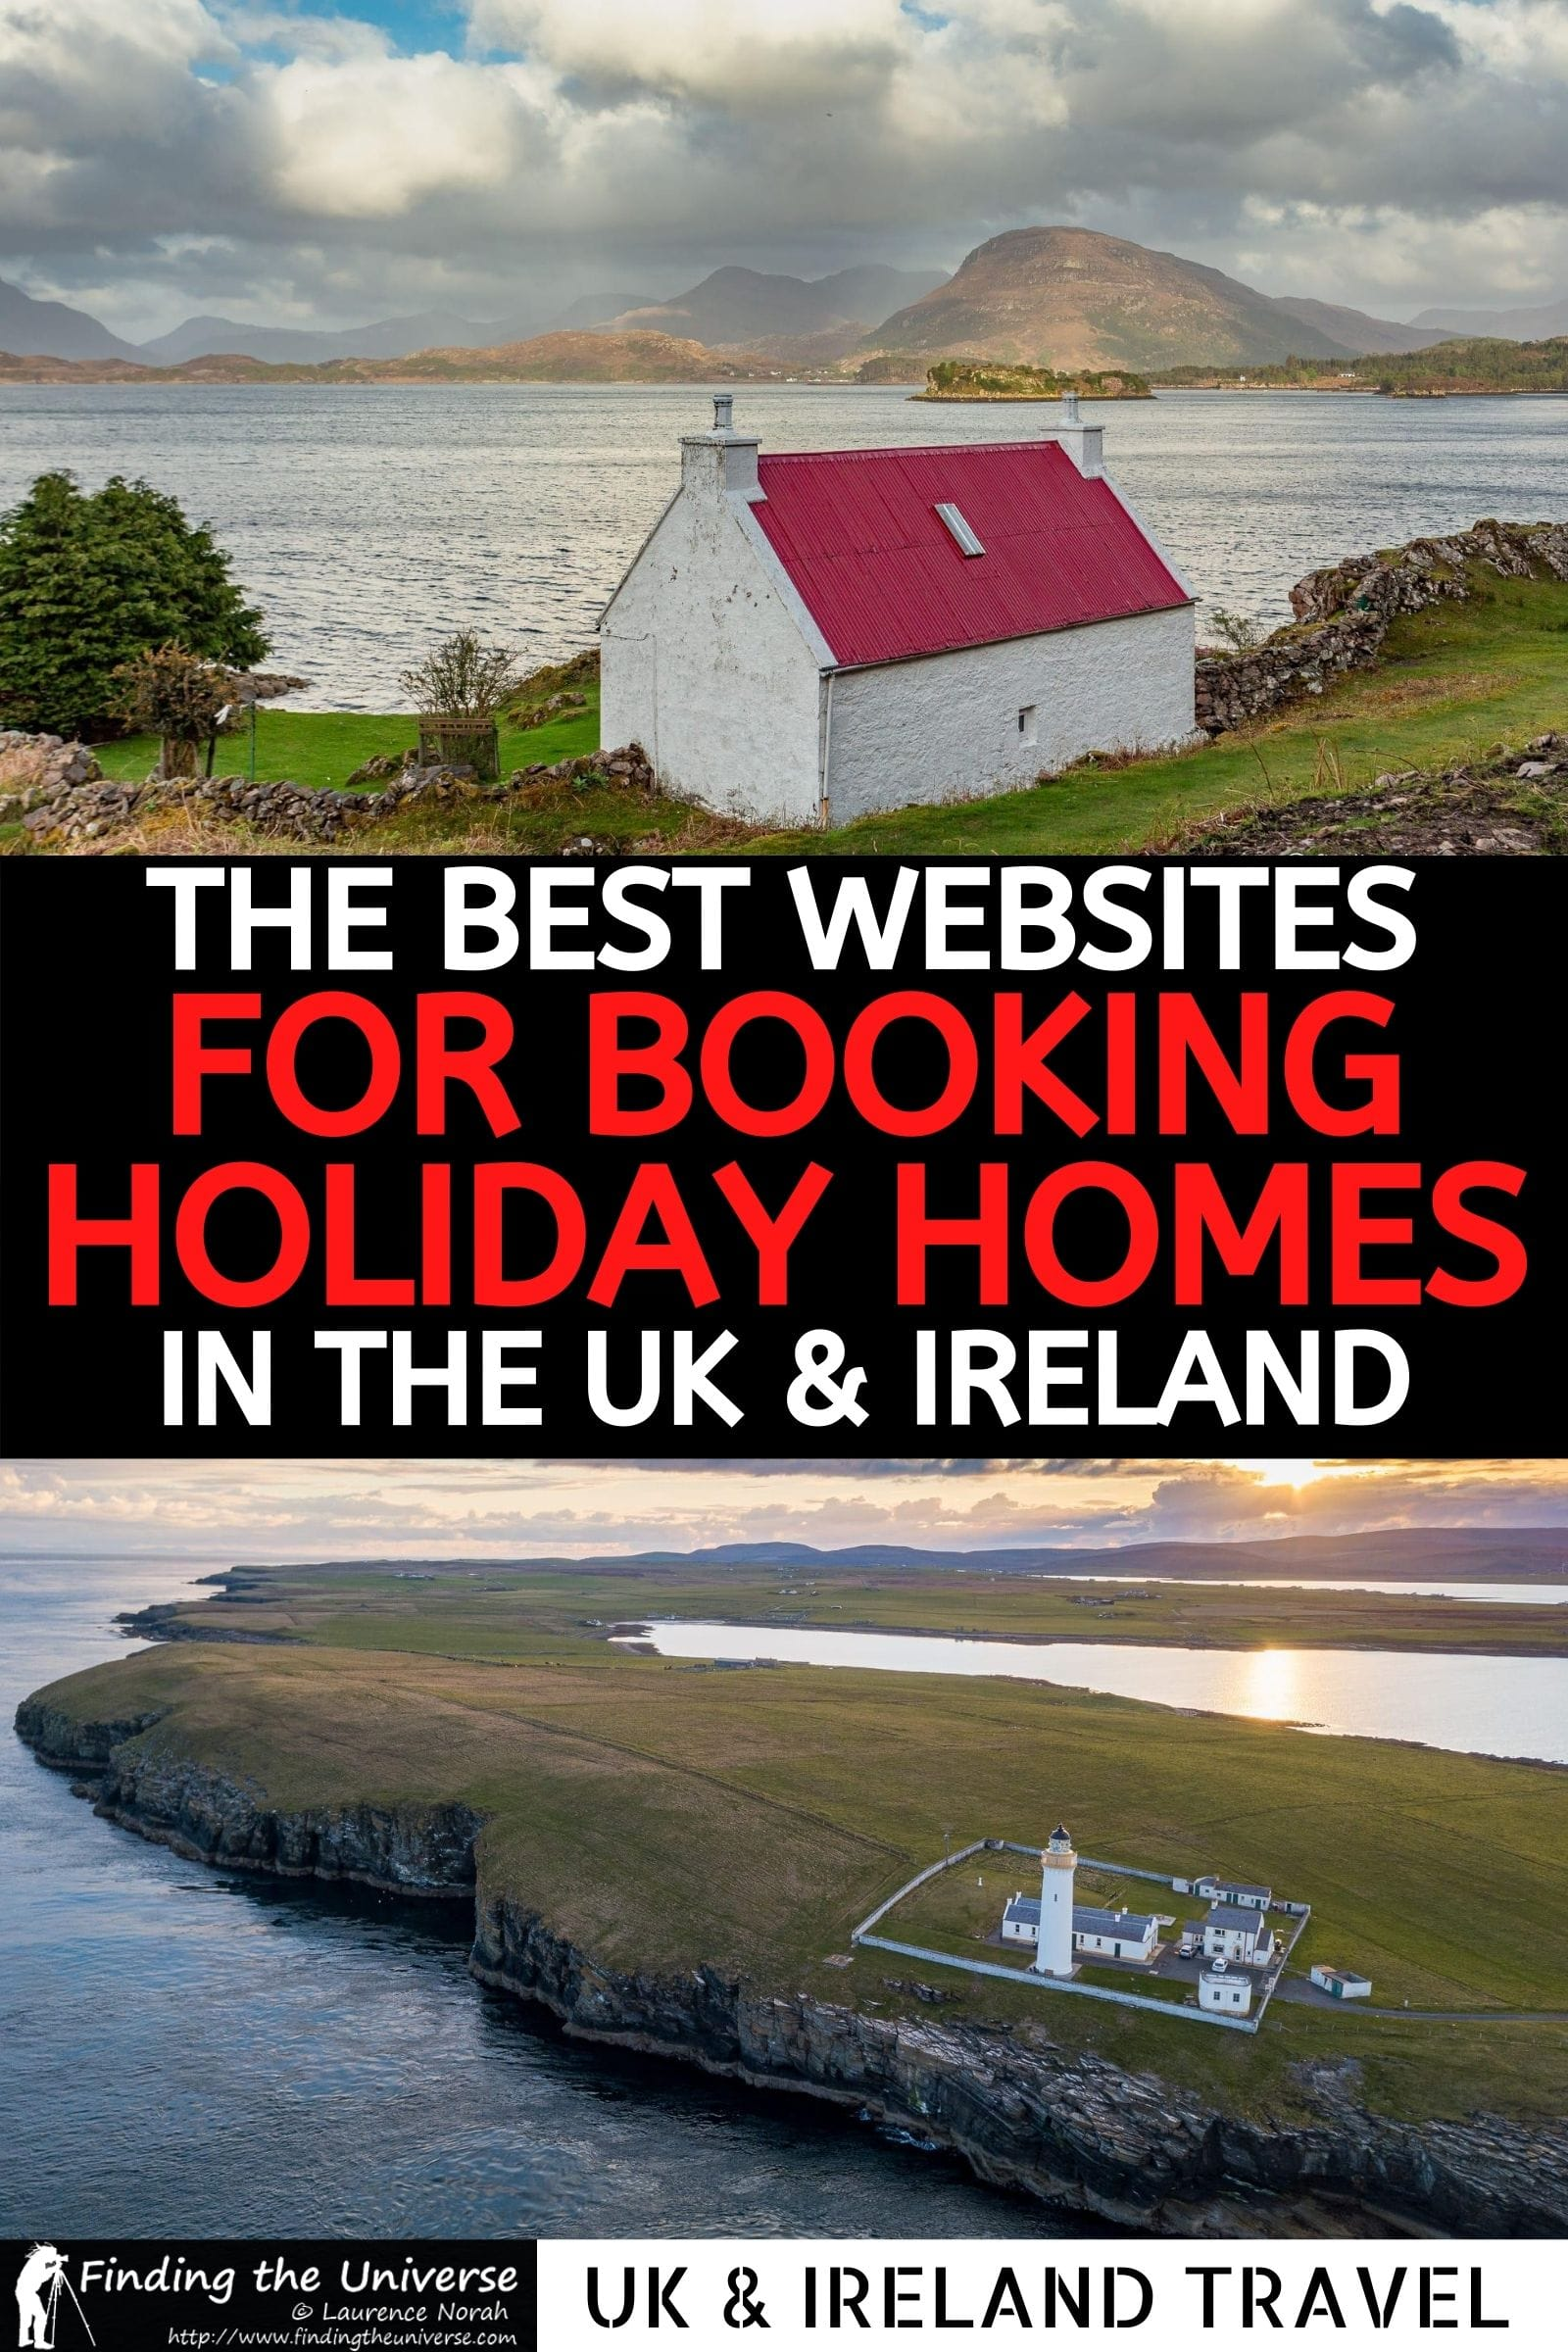 A detailed guide to some of the best websites for booking a holiday home in the UK. For everything from holiday cottages to castles, apartments & more!